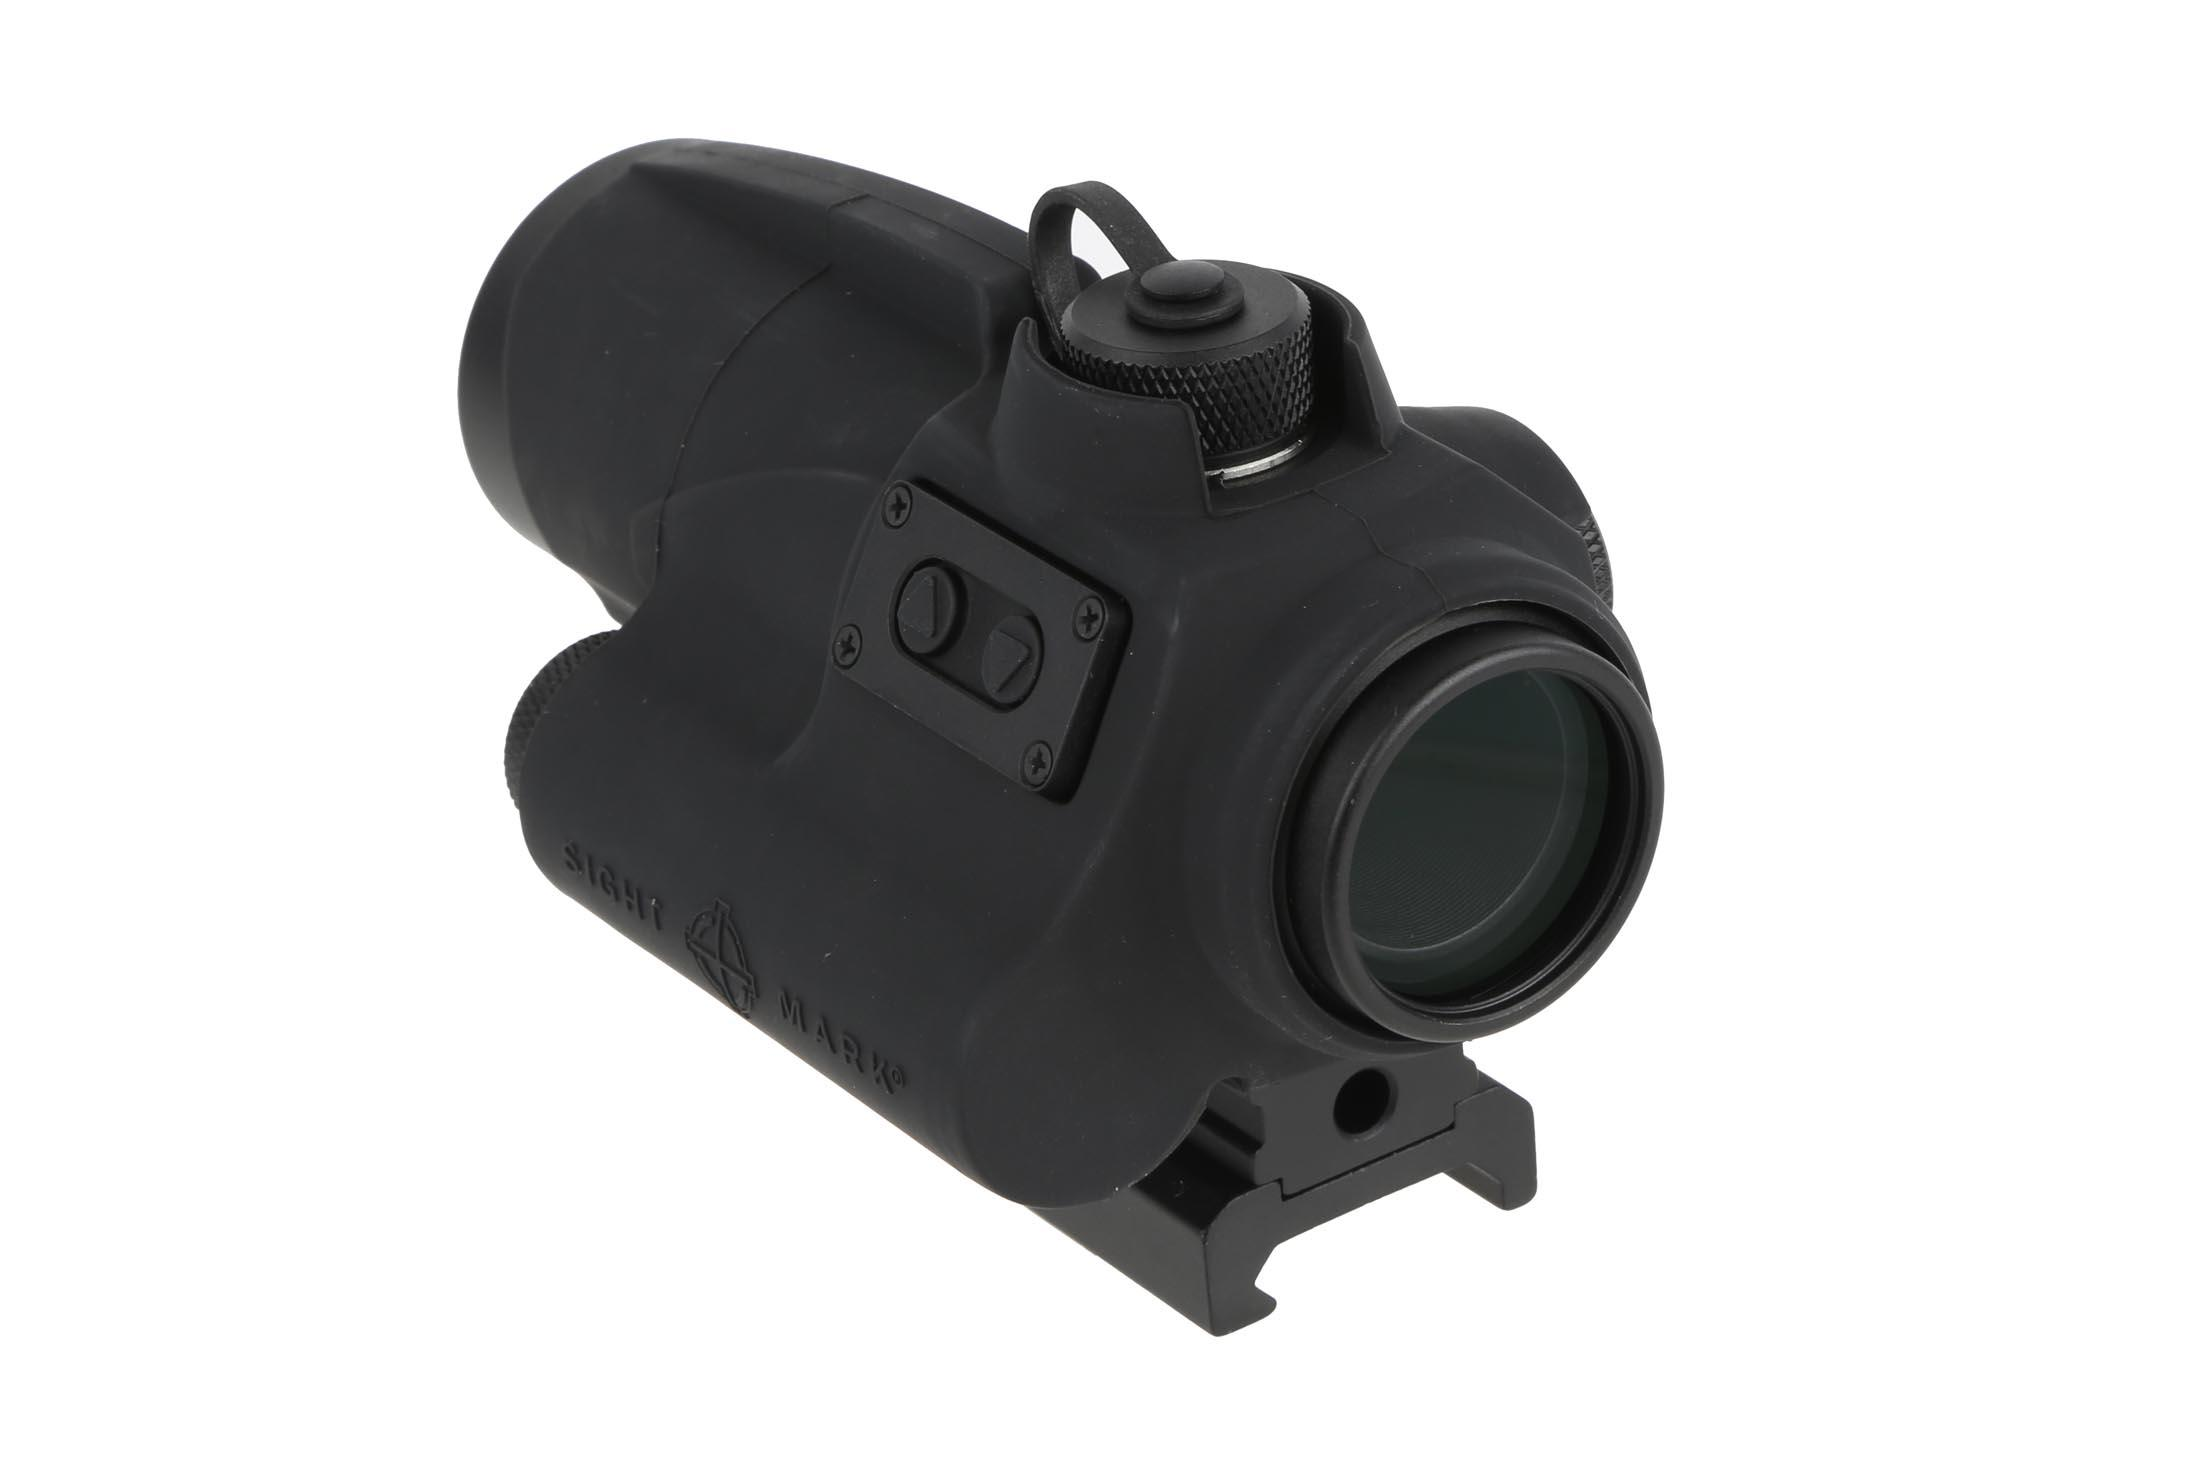 This AR red dot scope by Sightmark is designed for use on AR-15 rifles